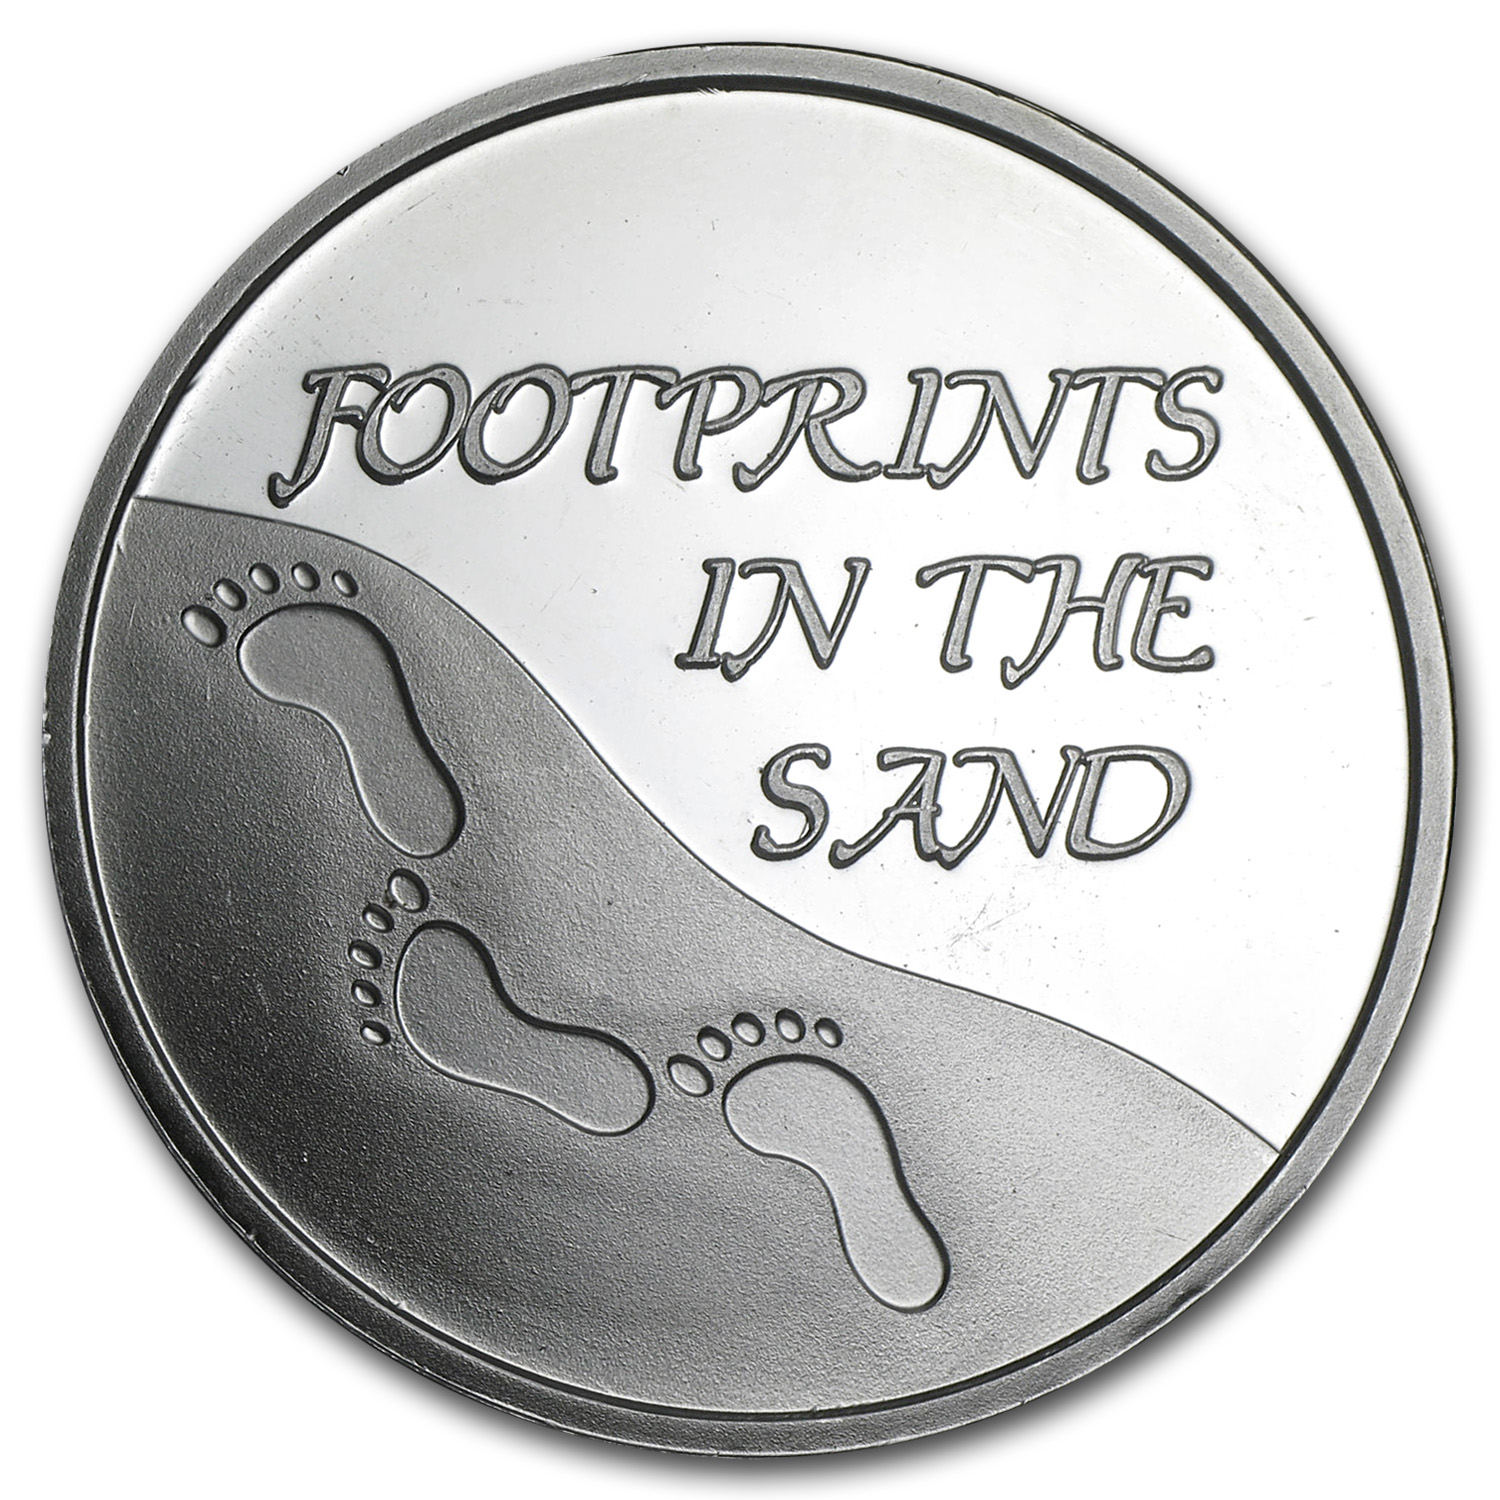 1 oz Silver Rounds - Footprints in the Sand (w/Box & Capsule)